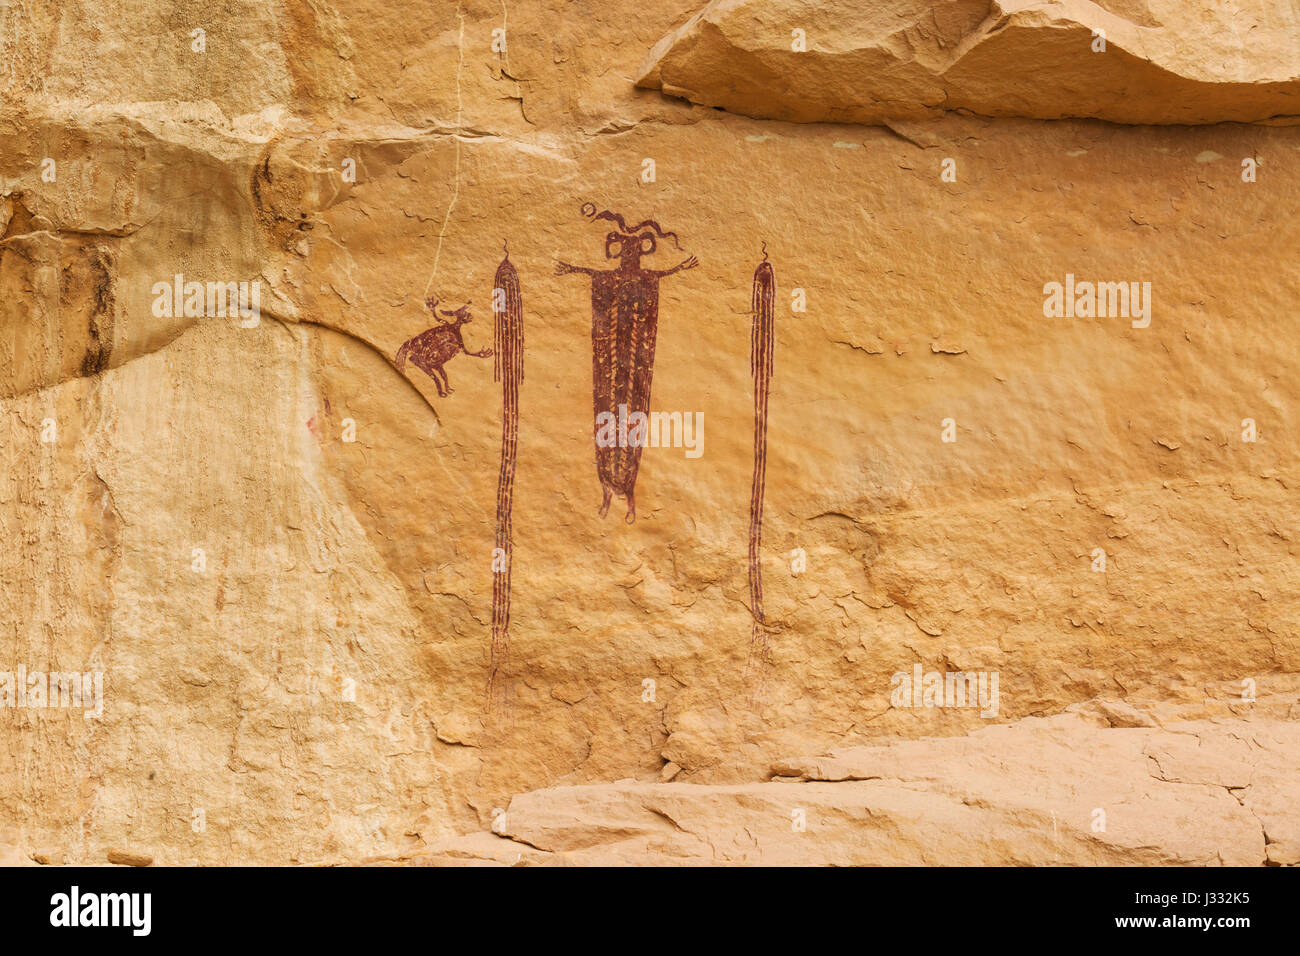 head of sinbad pictograph panel in emery county near green river, utah - Stock Image